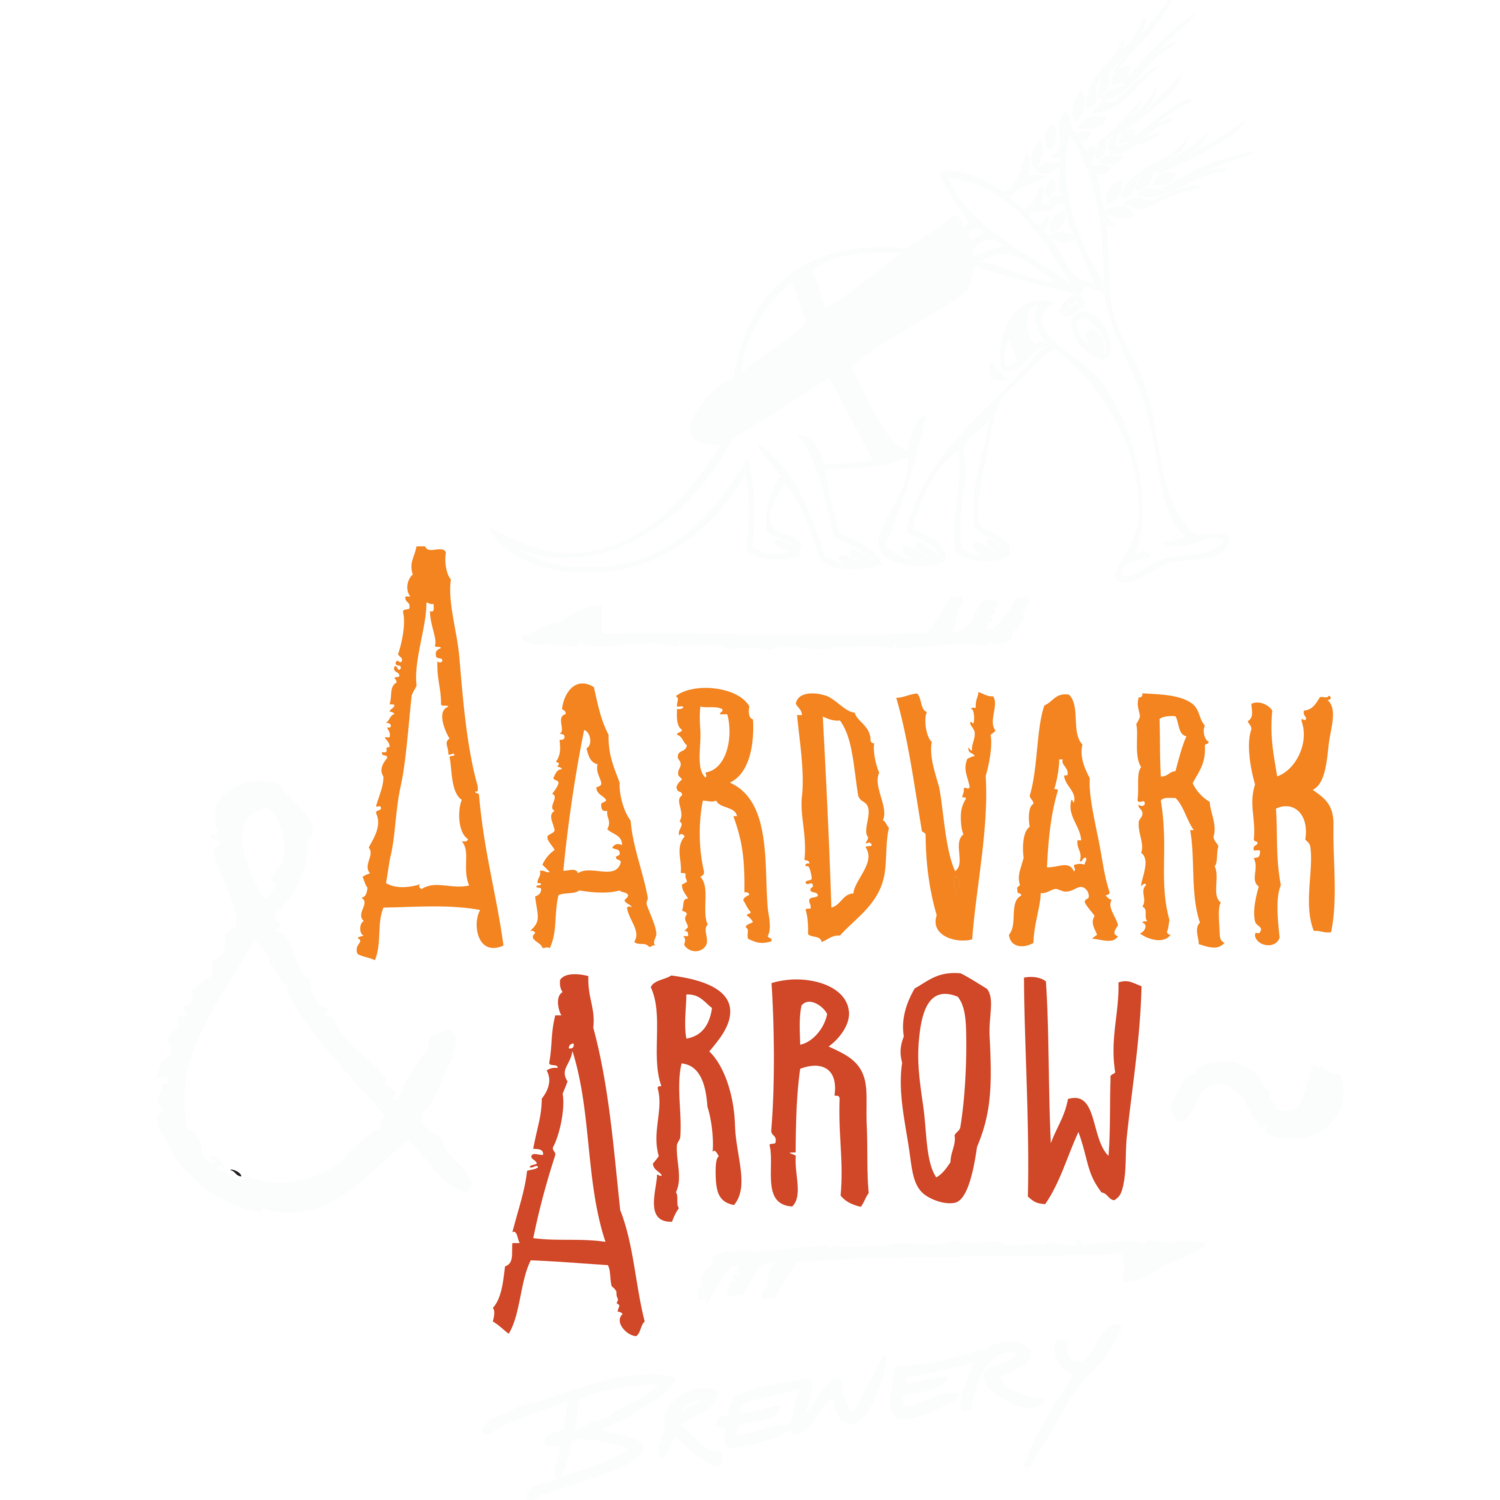 AARDVARK & ARROW